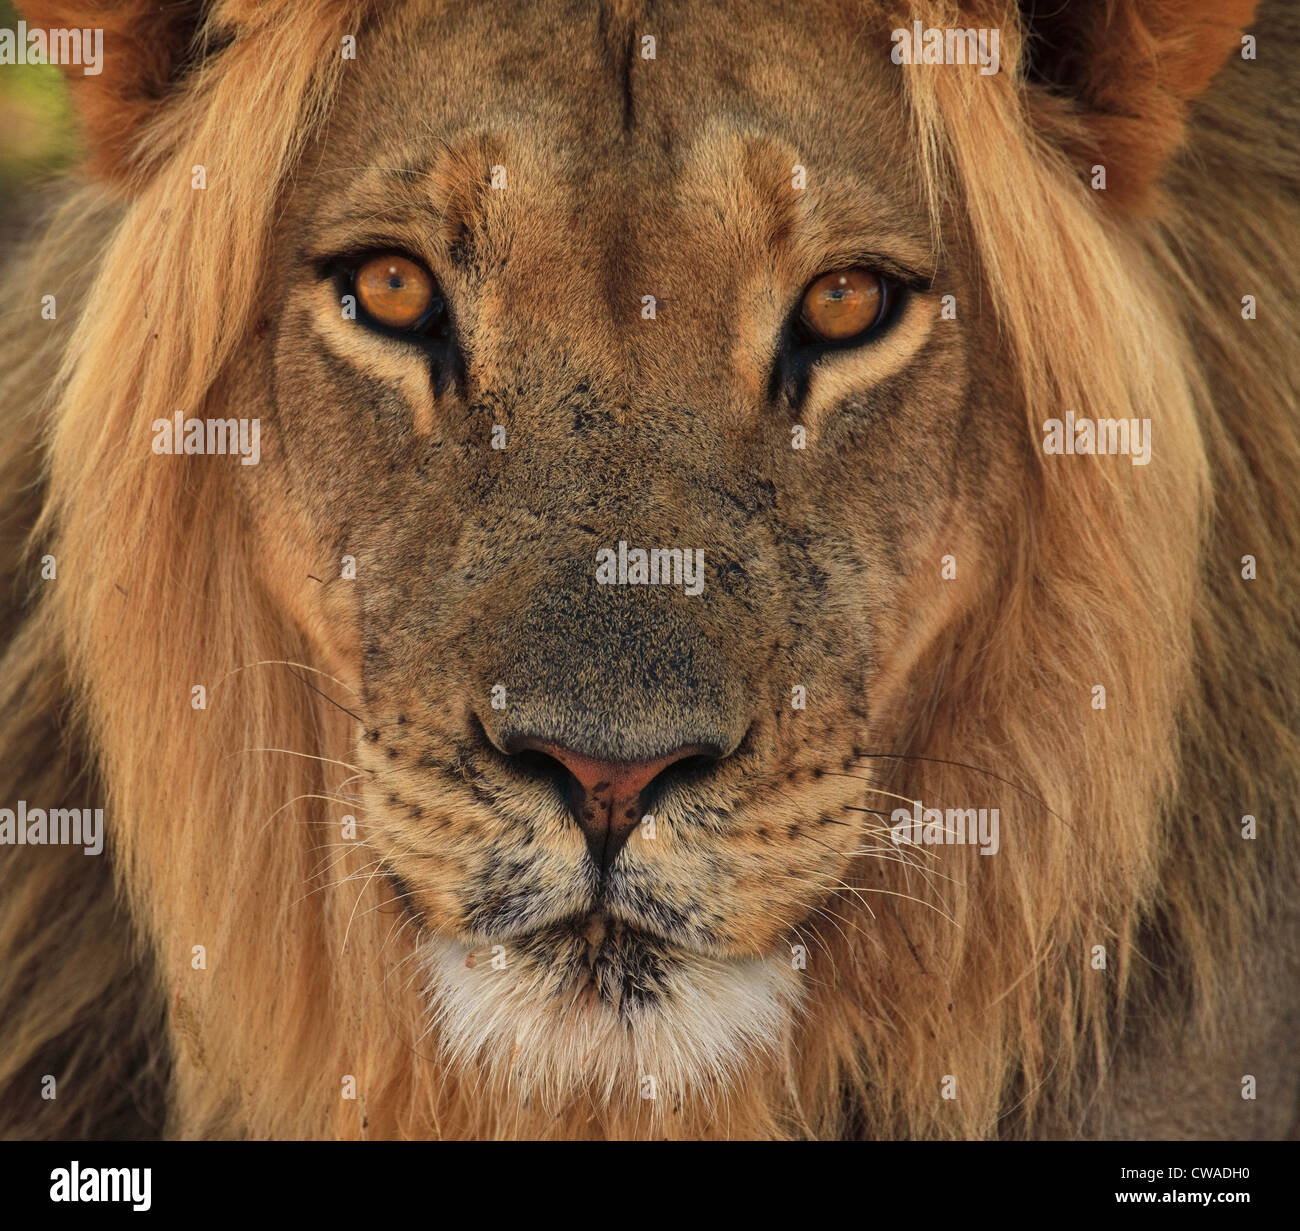 Lion portrait, Kgalagadi Transfrontier Park, Afrique Photo Stock